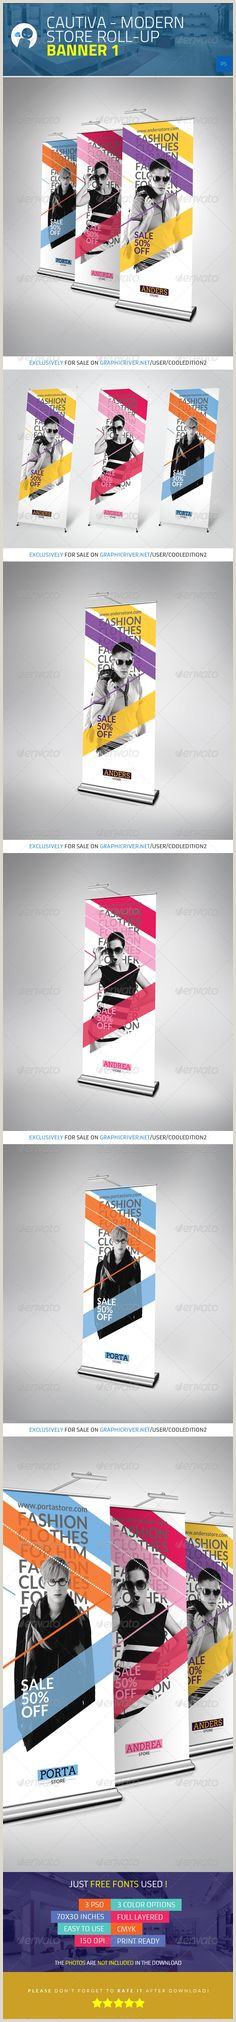 Pull Up Banner Printing 40 Mejores Imágenes De Roll Up Banner